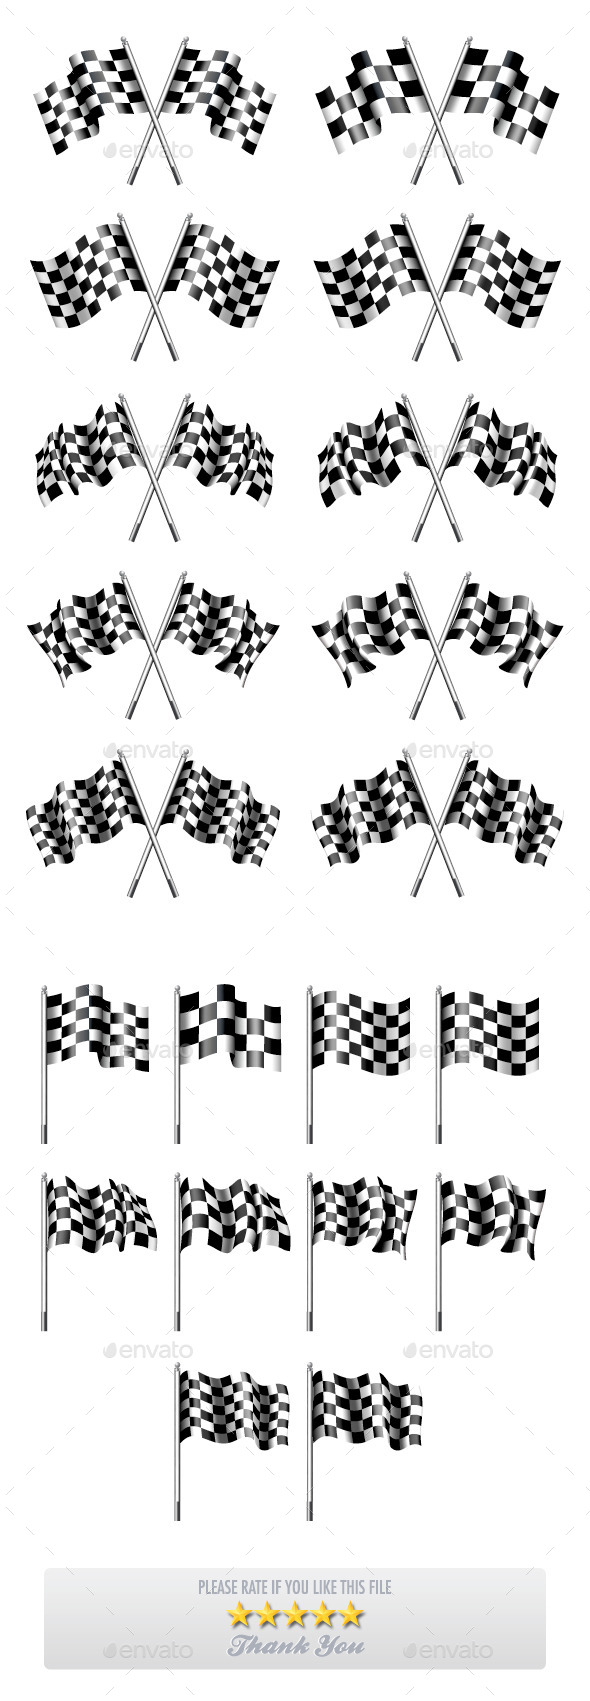 10 Versions of Chequered Flags